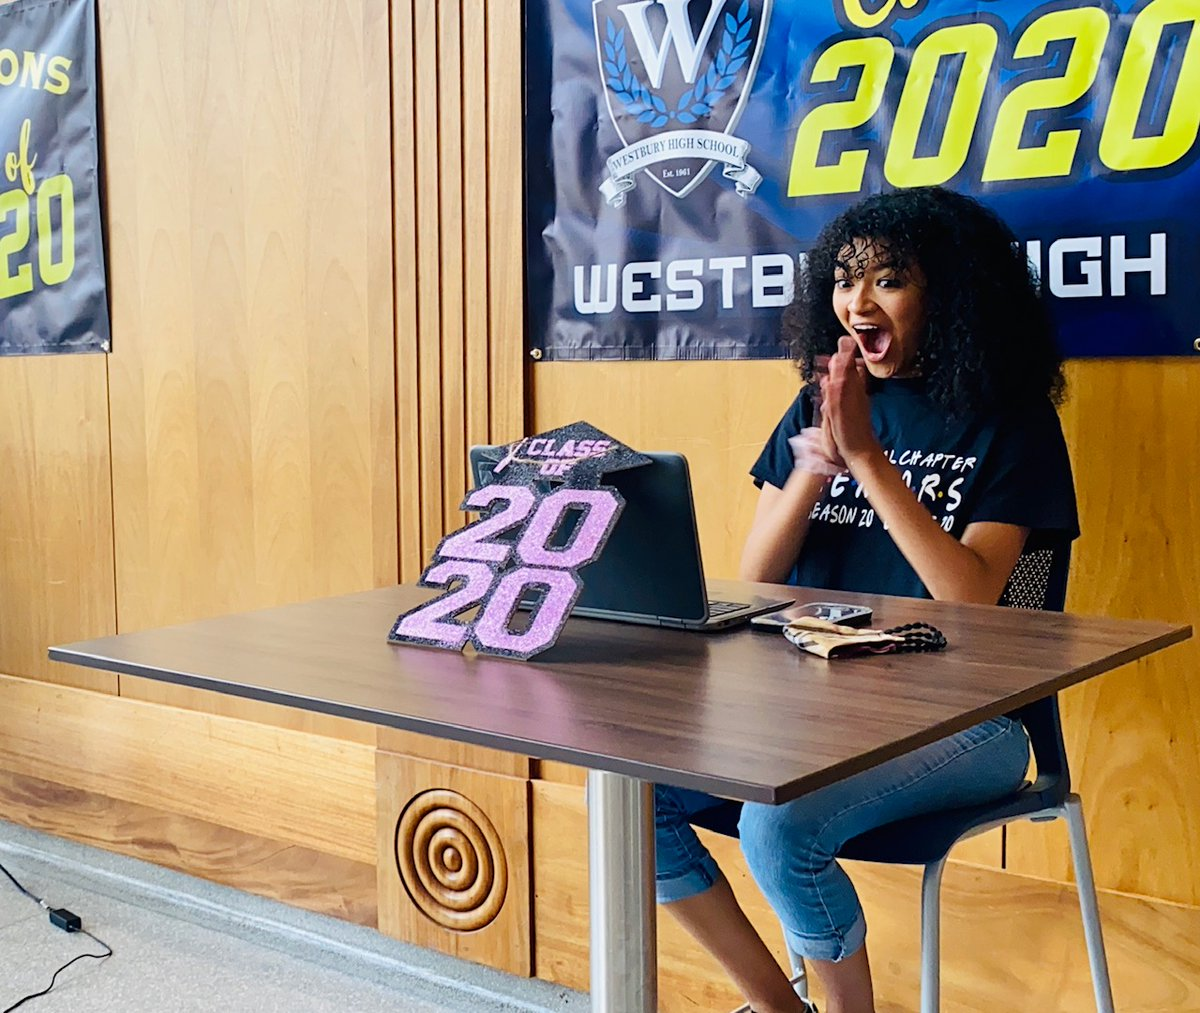 Replying to @WhenWeAllVote: That feeling when @MichelleObama hops on the zoom Join us in celebrating #PromChallenge winners @WHS_HUSKIES and the rest of the #Classof2020 this Friday at #MTVPromathon ✨  #TrumpVirus #Resist #HateLiberalsBiteMe